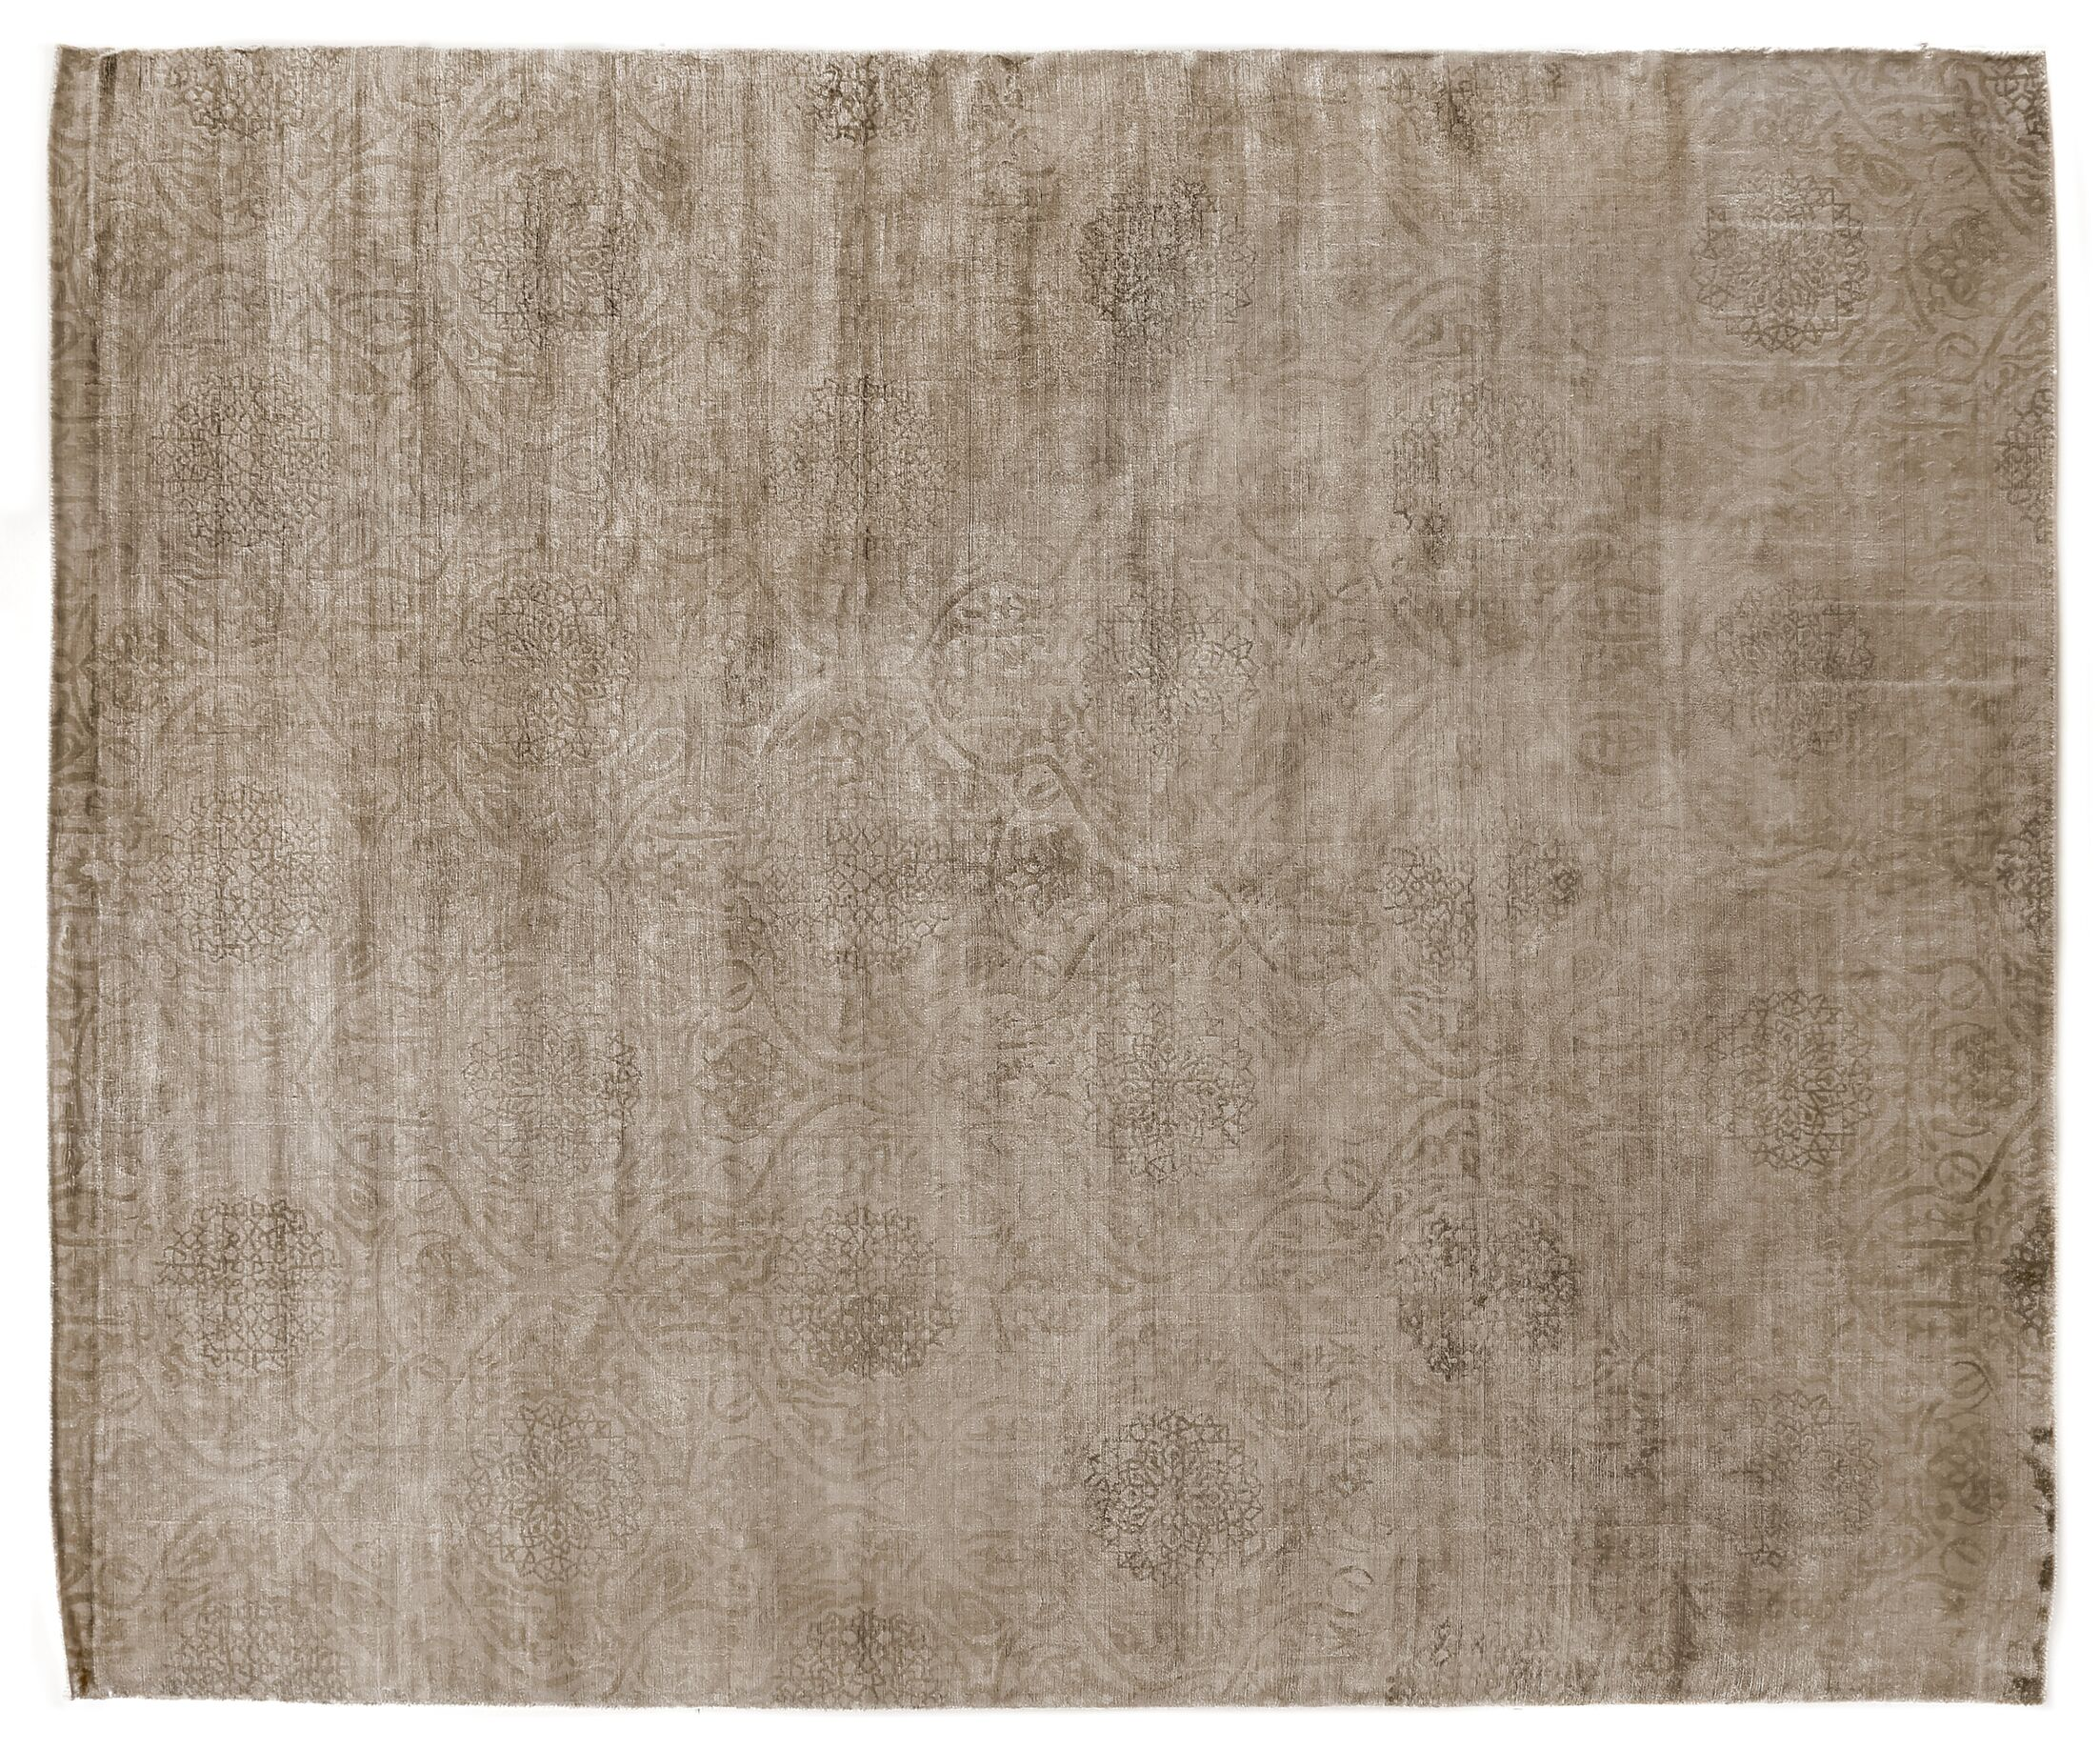 Koda Hand-Woven Beige Area Rug Rug Size: Rectangle 10' x 14'